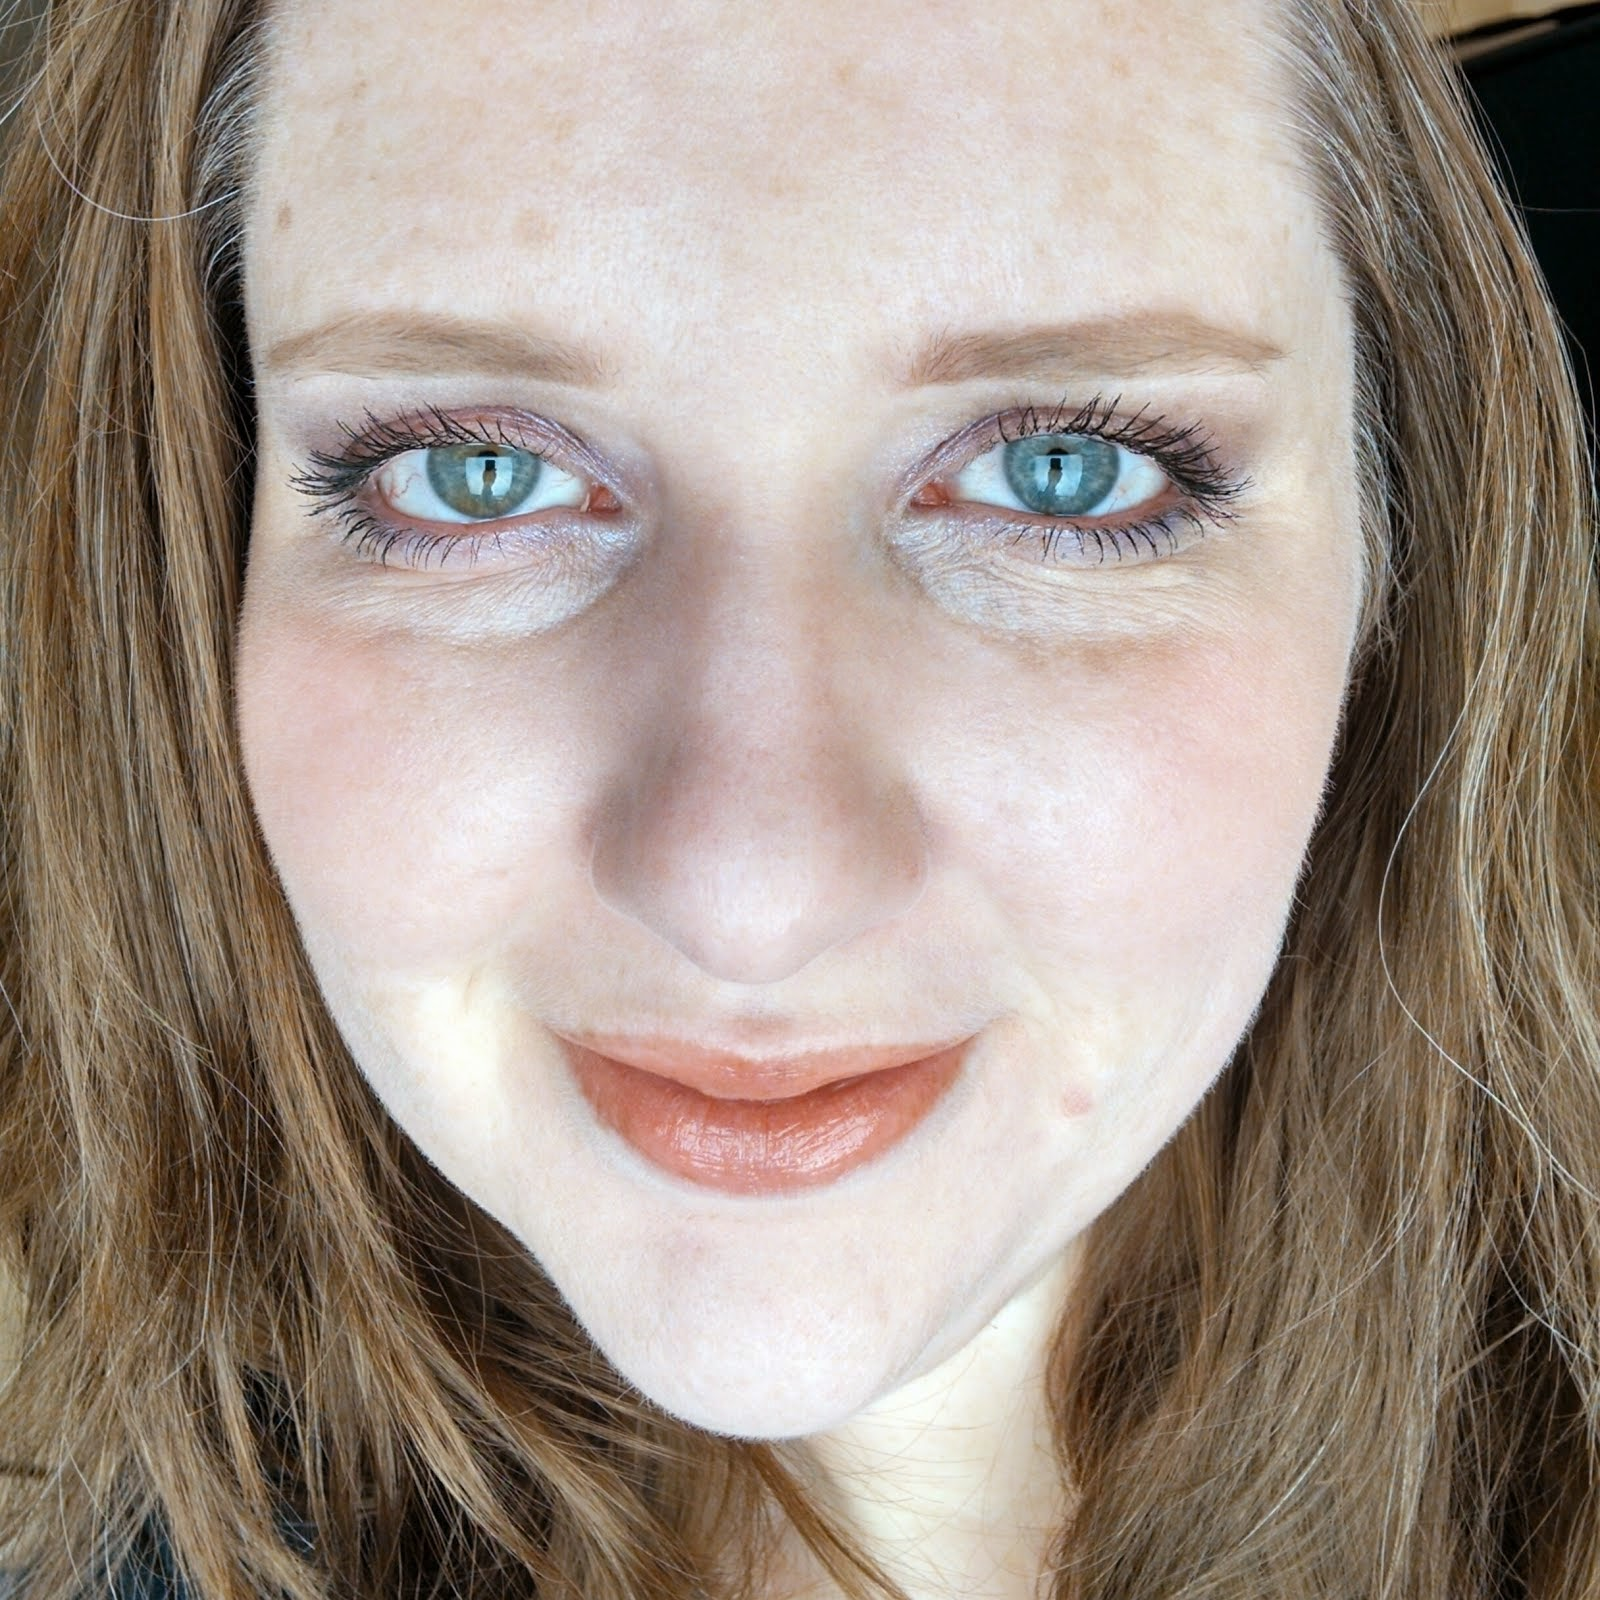 beyond the pale and freckled: April 2014